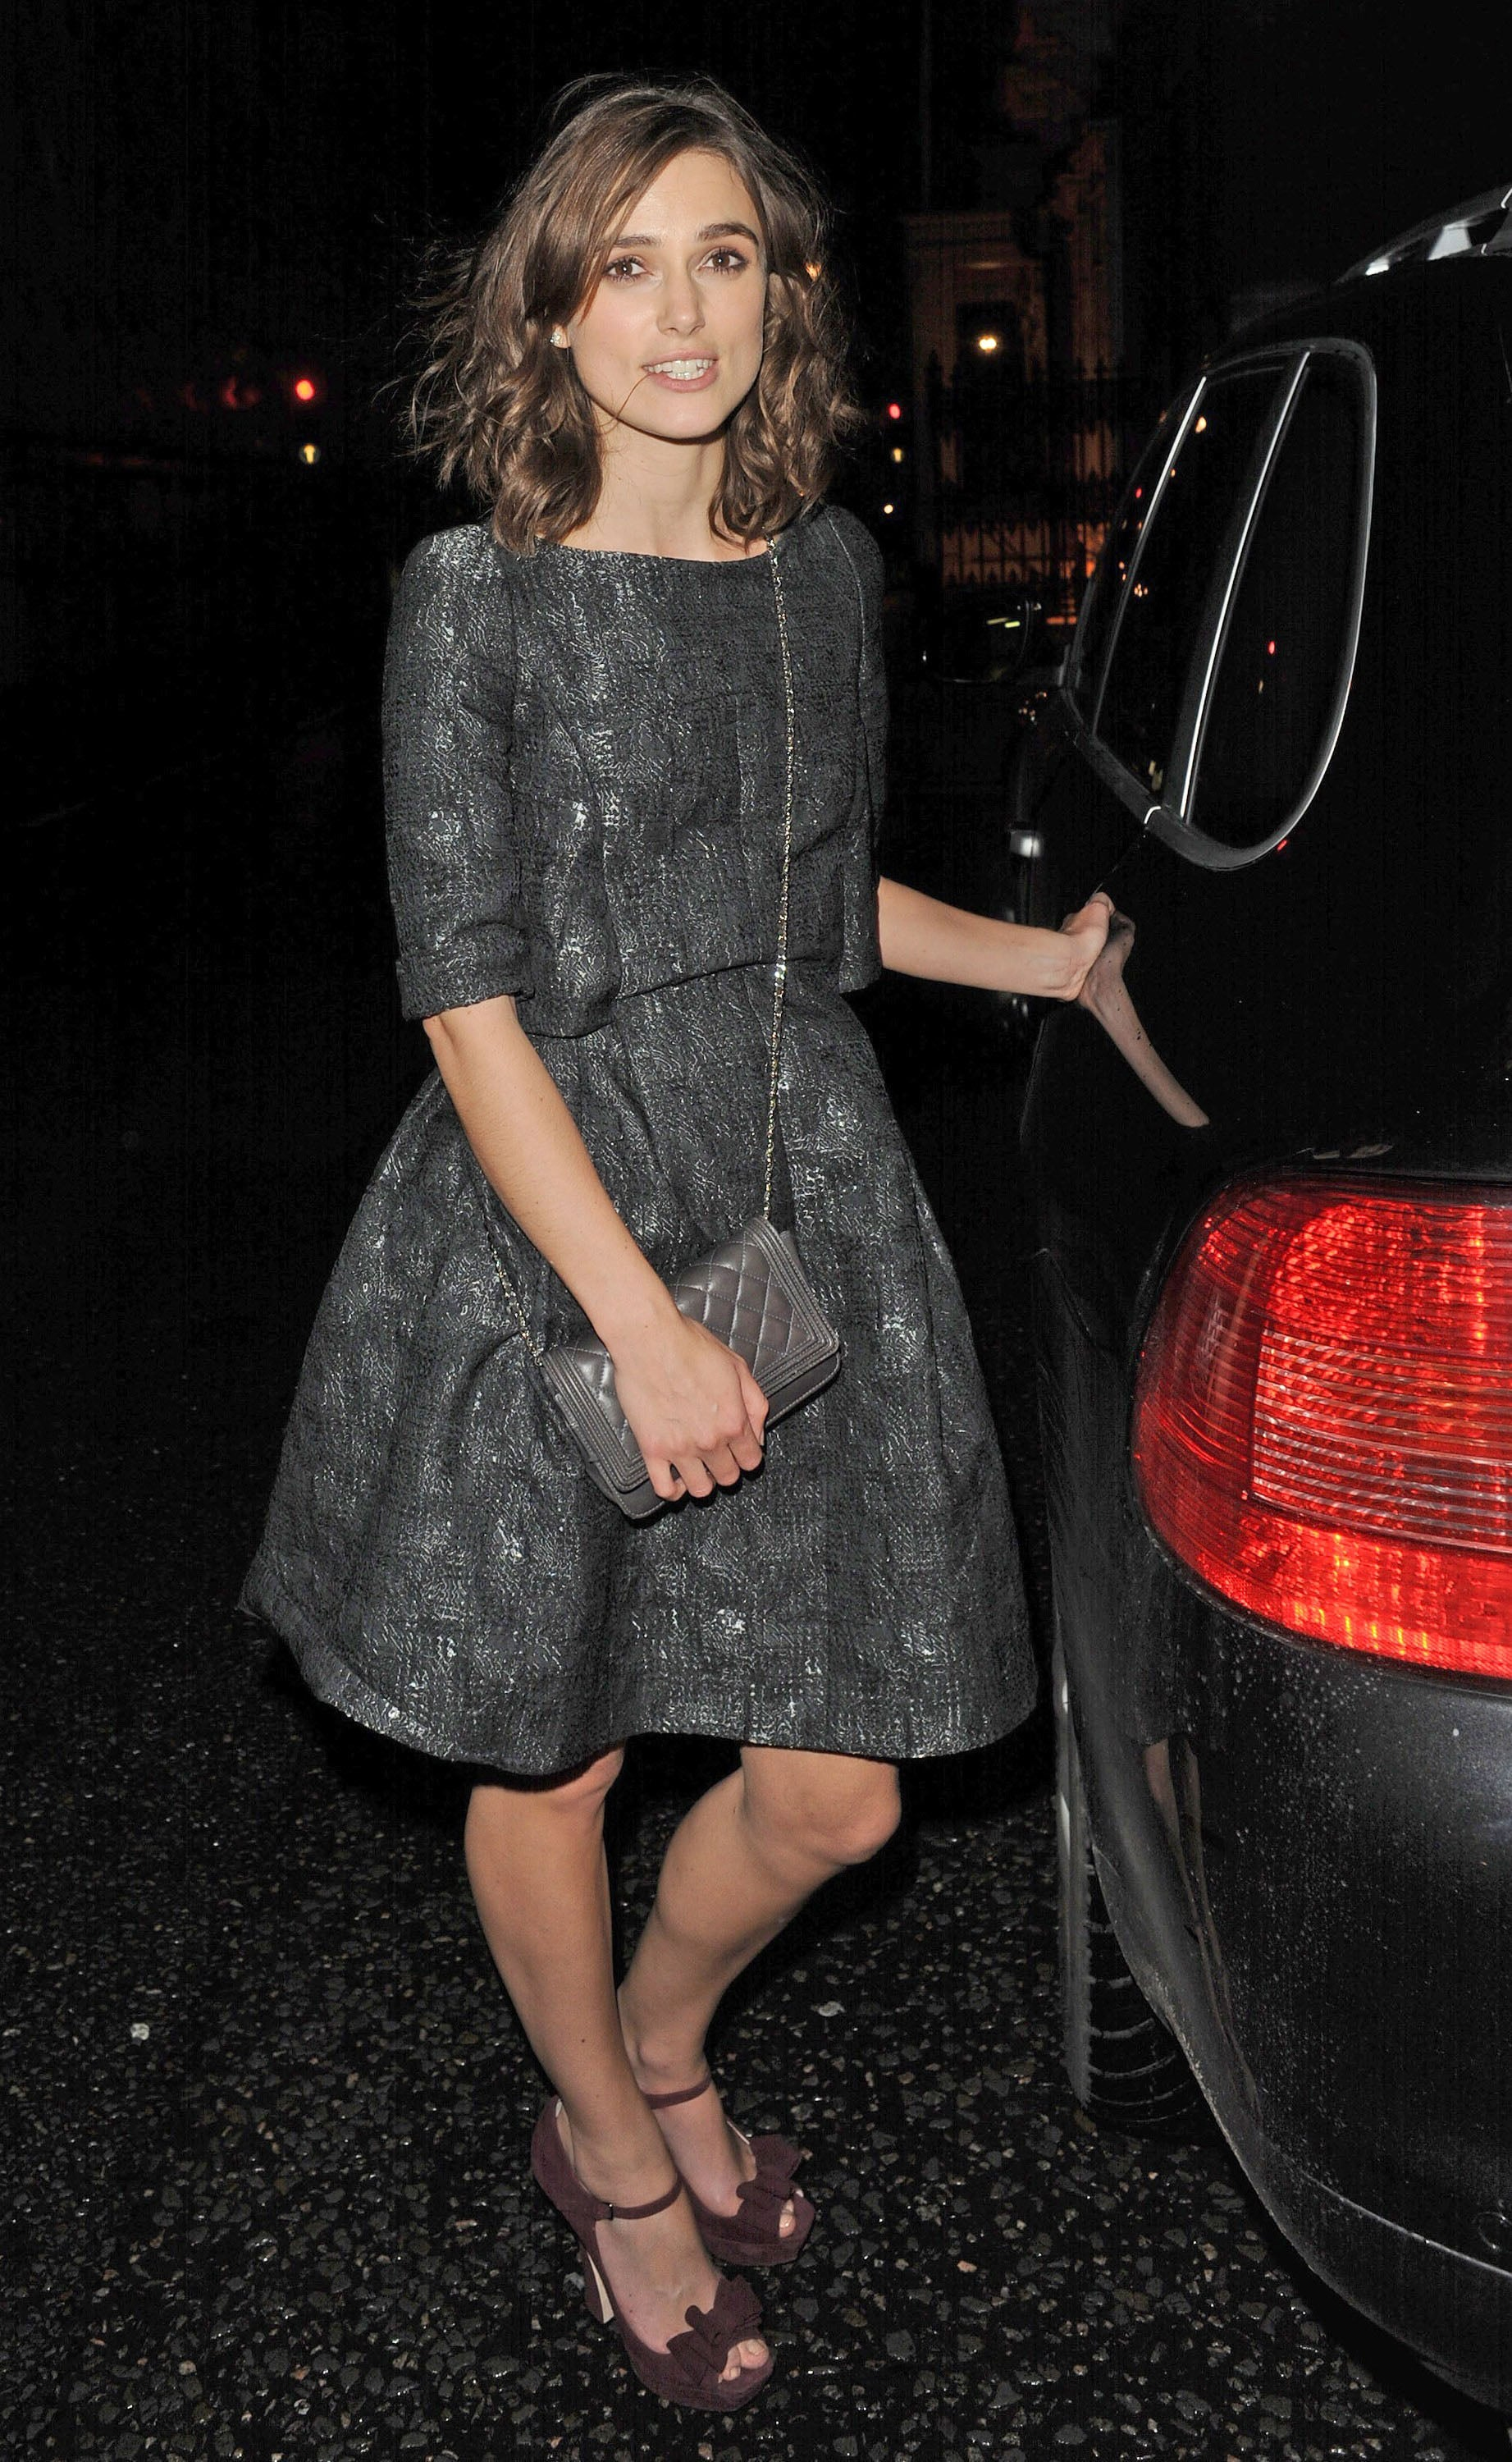 Keira Knightley got in the backseat of a waiting car.